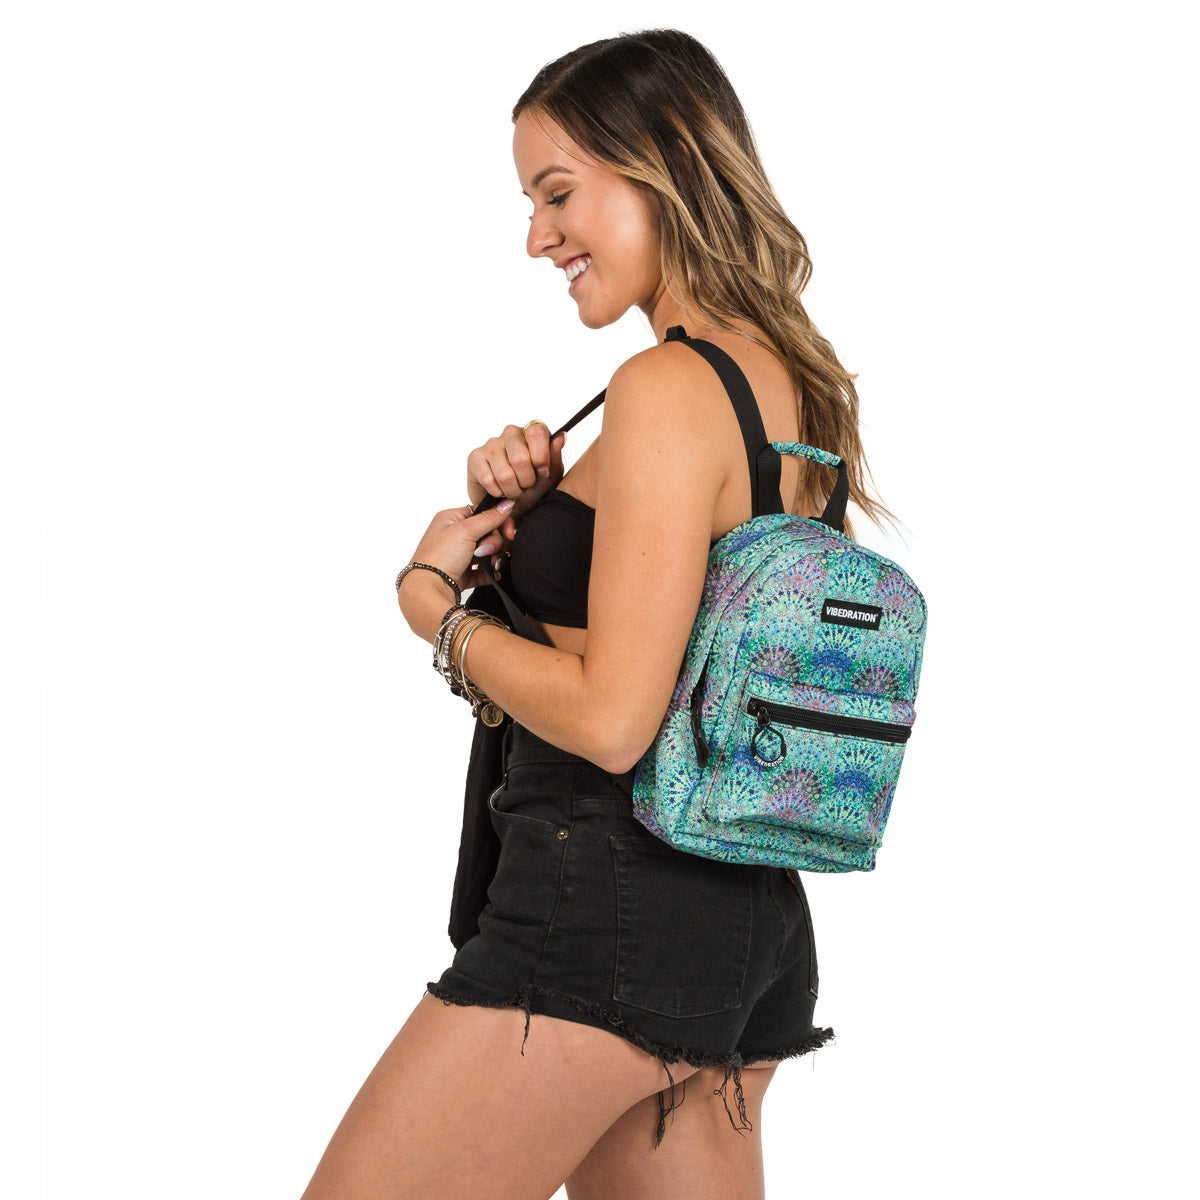 Bohemian Printed Mini Backpack for Music Festivals